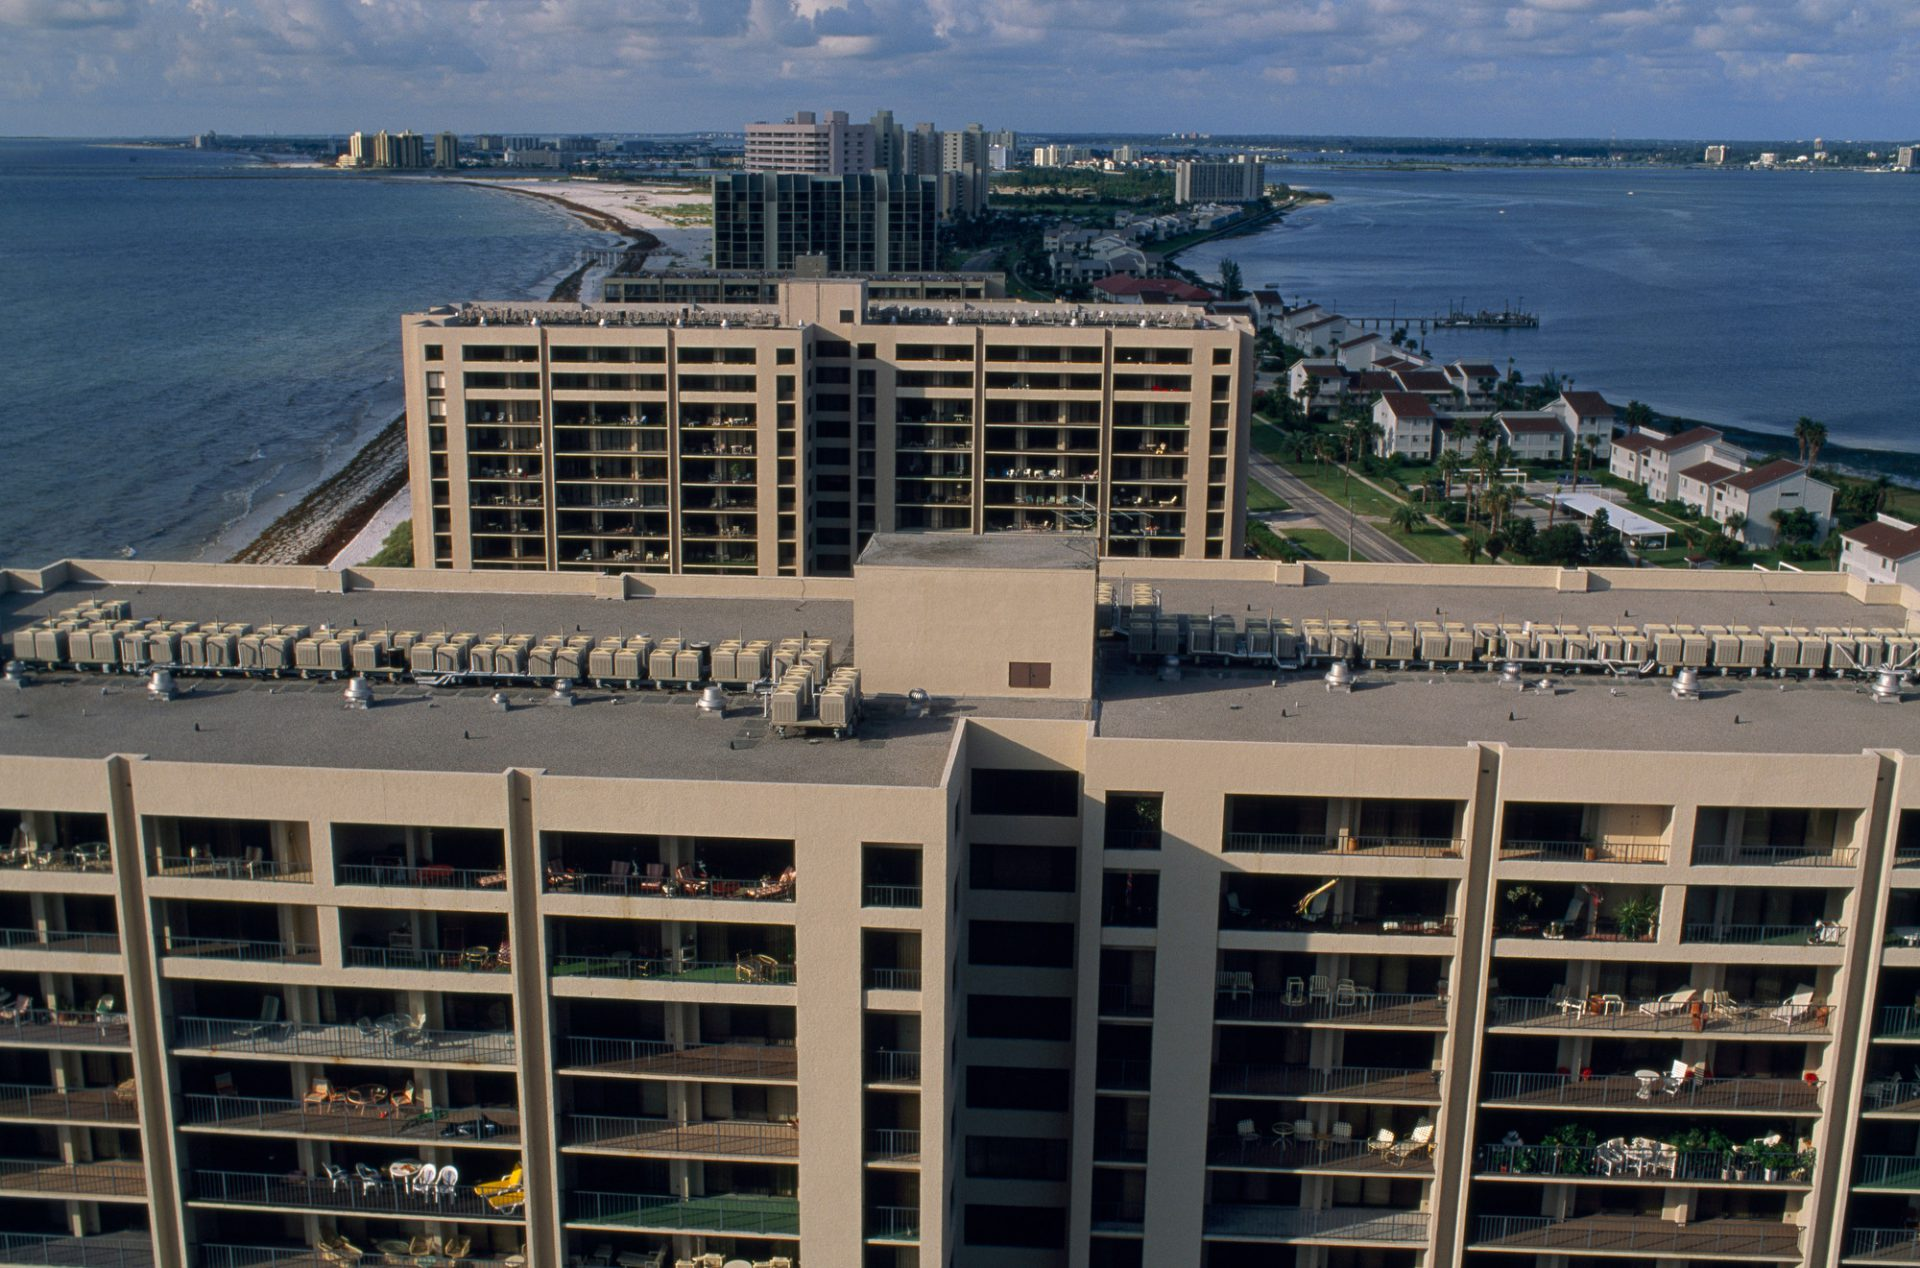 Photo: Condominiums along Sand Key along the Gulf of Mexico near Clearwater-St. Petersburg, Florida.